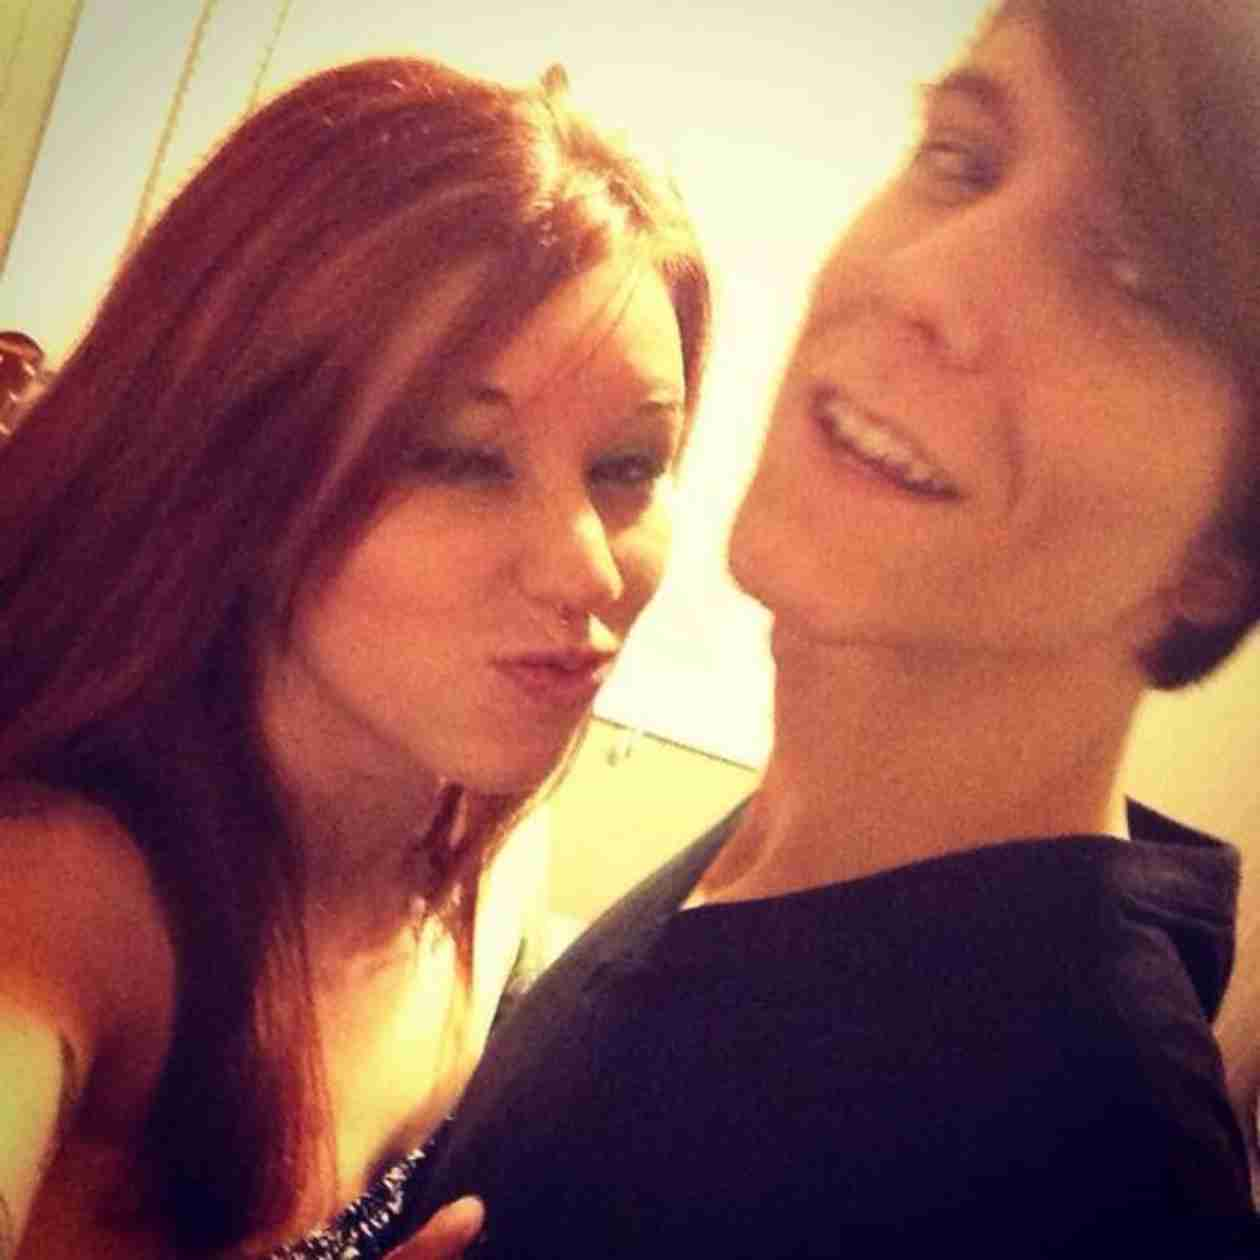 16 and Pregnant's Megan McConnell Has ANOTHER Unplanned Pregnancy!